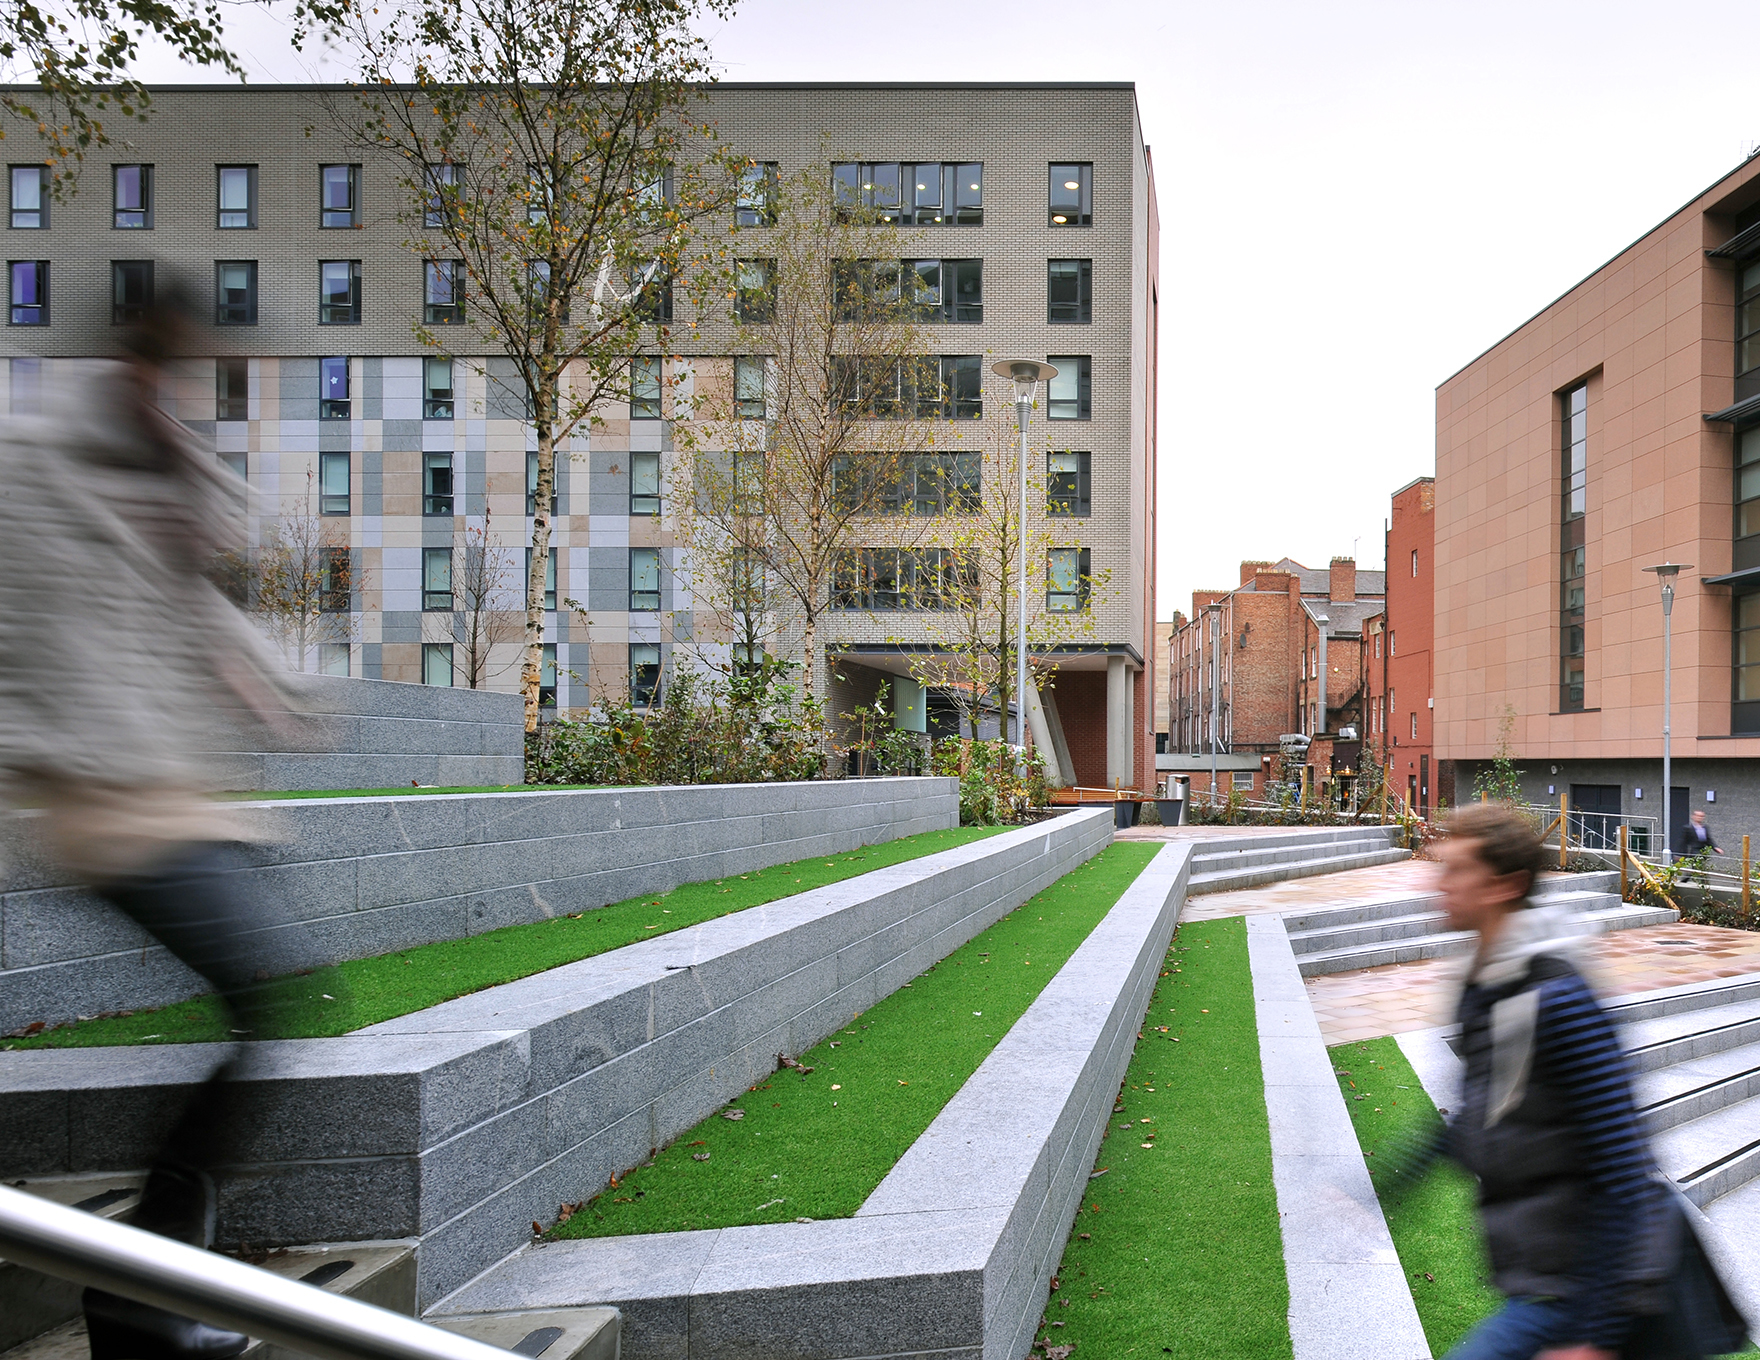 Into Newcastle University Student Residences Landscaped Public Realm L